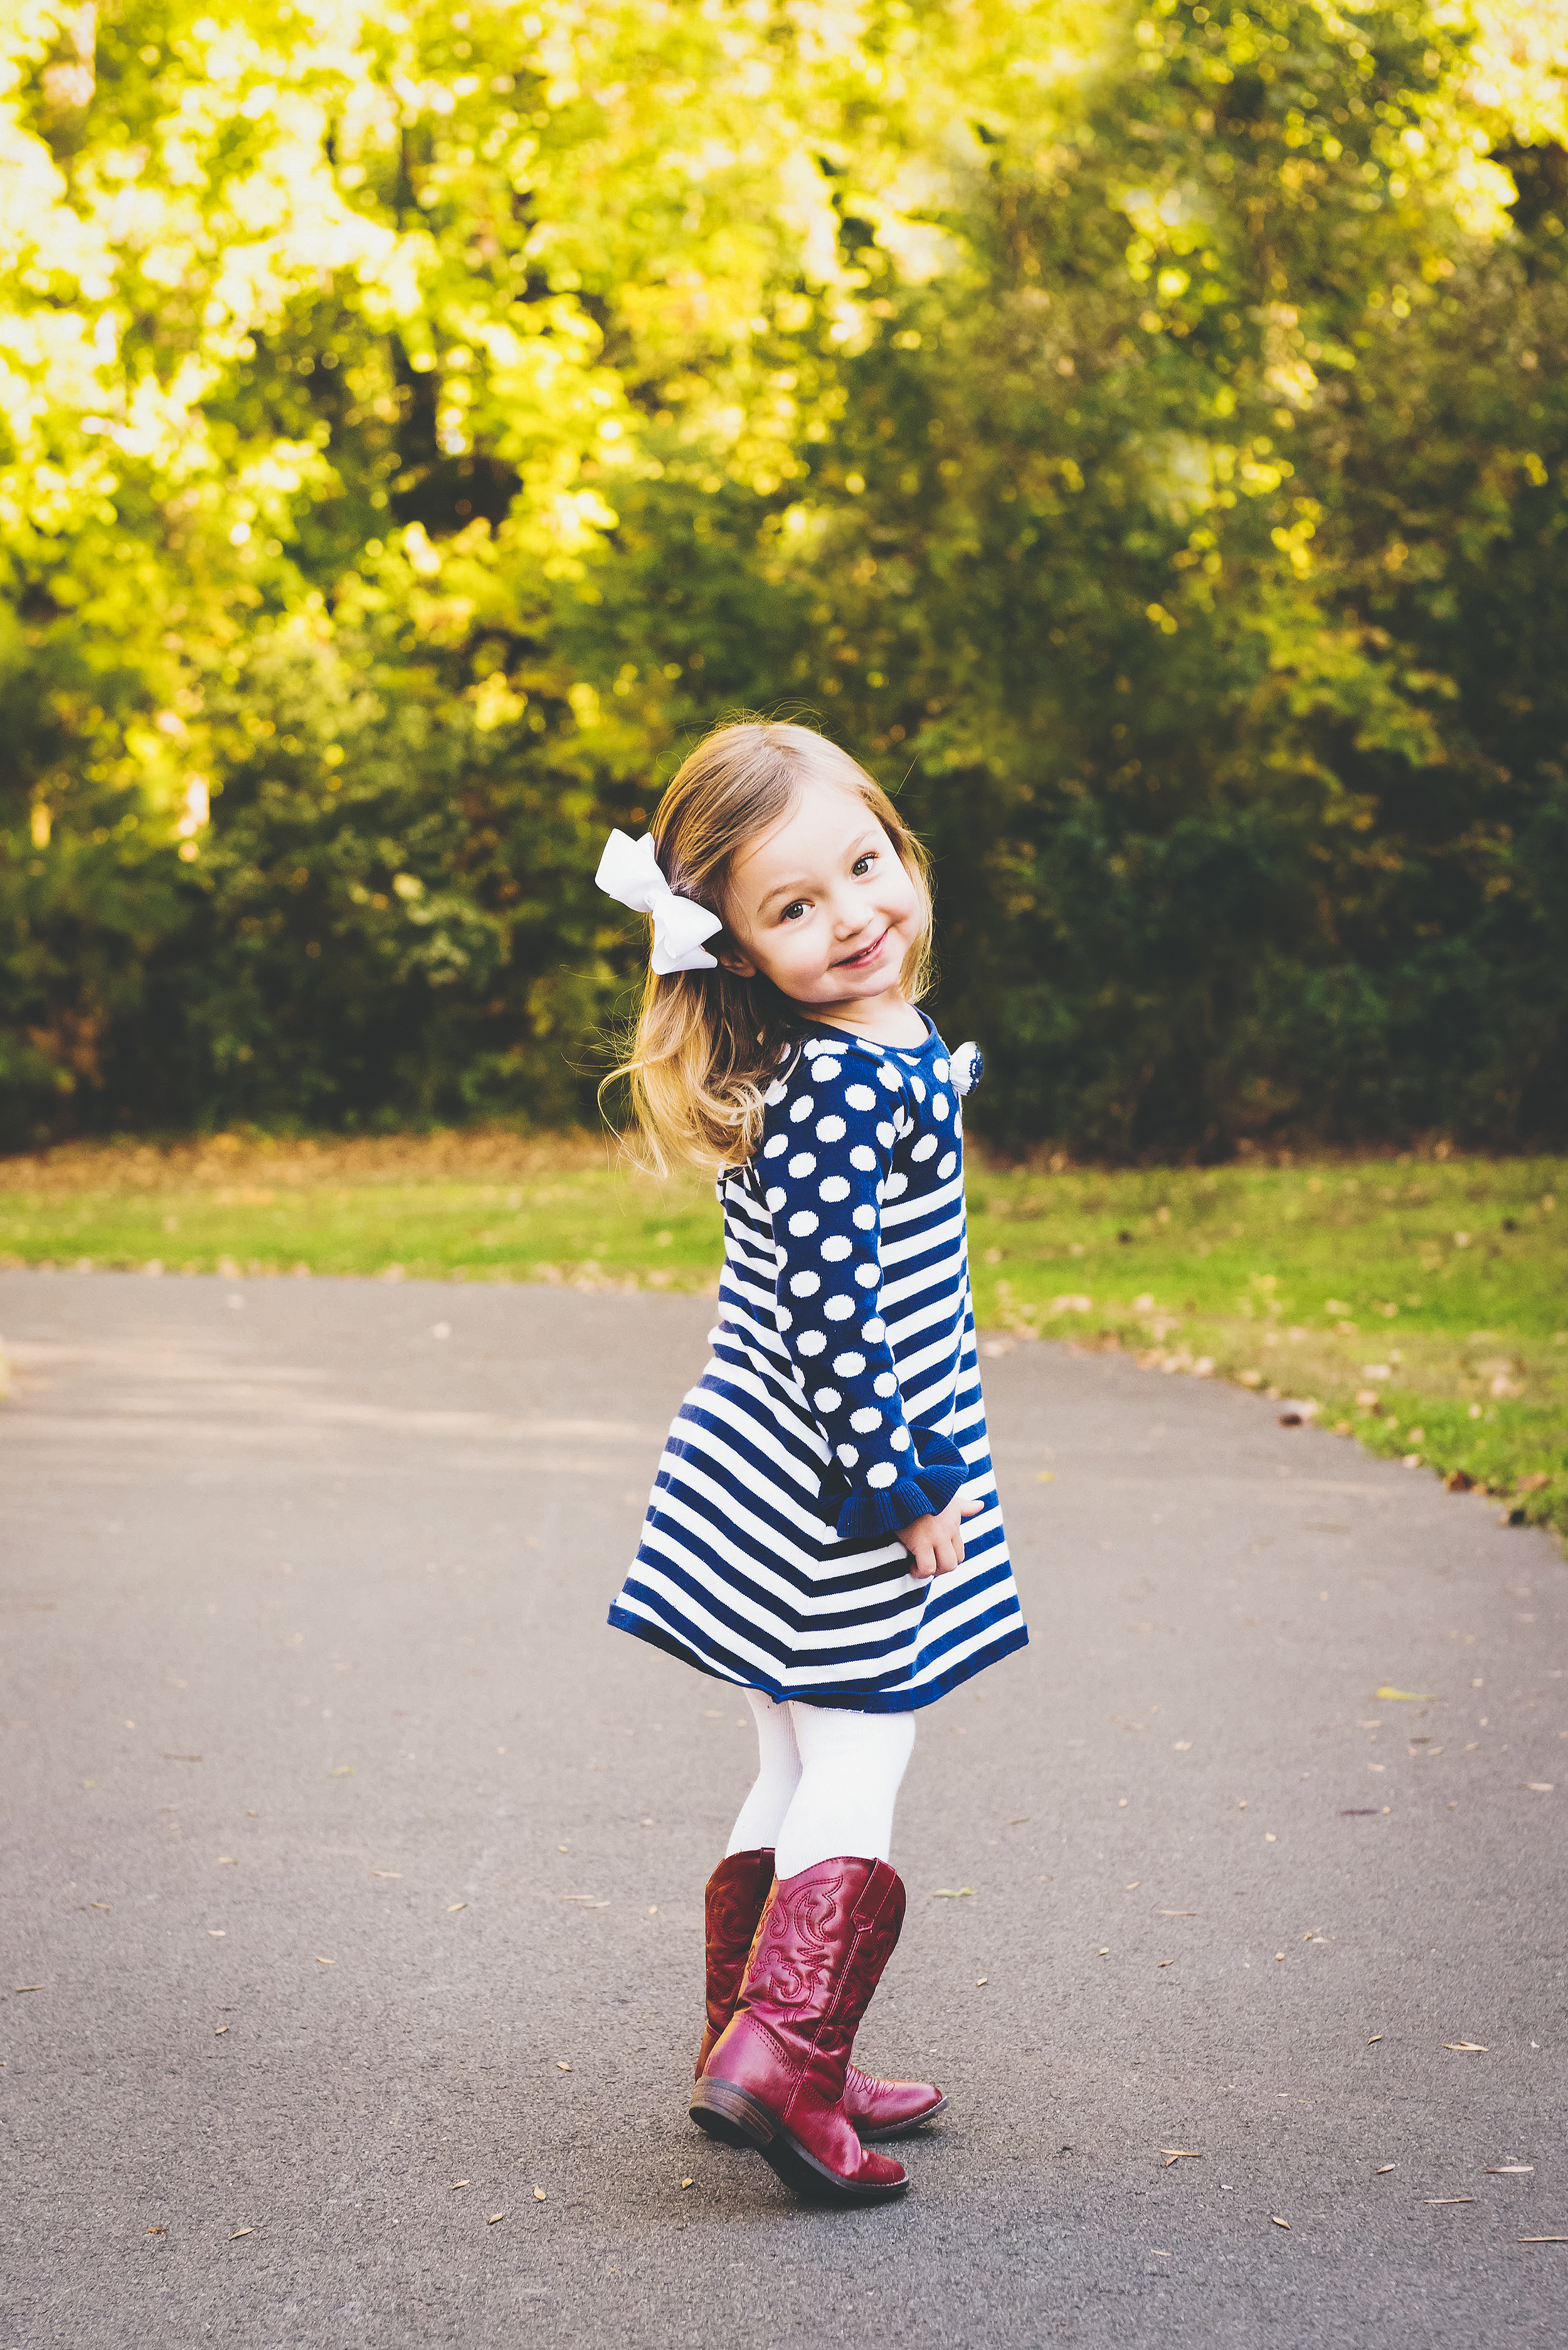 fall-family-photography-sessions-cary-11.jpg